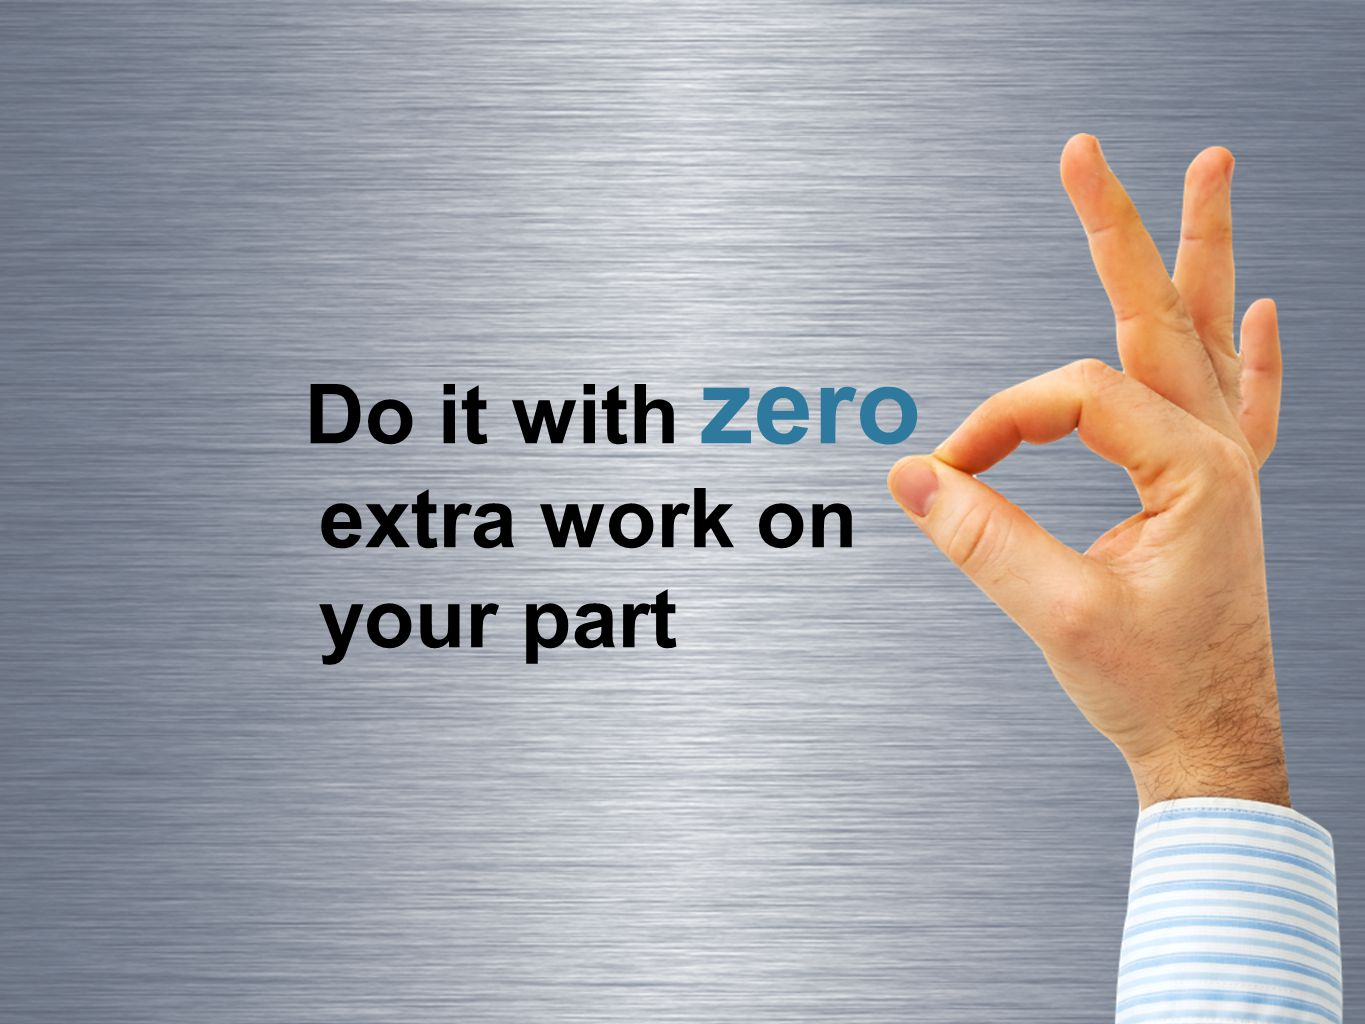 Do it with zero extra work on your part